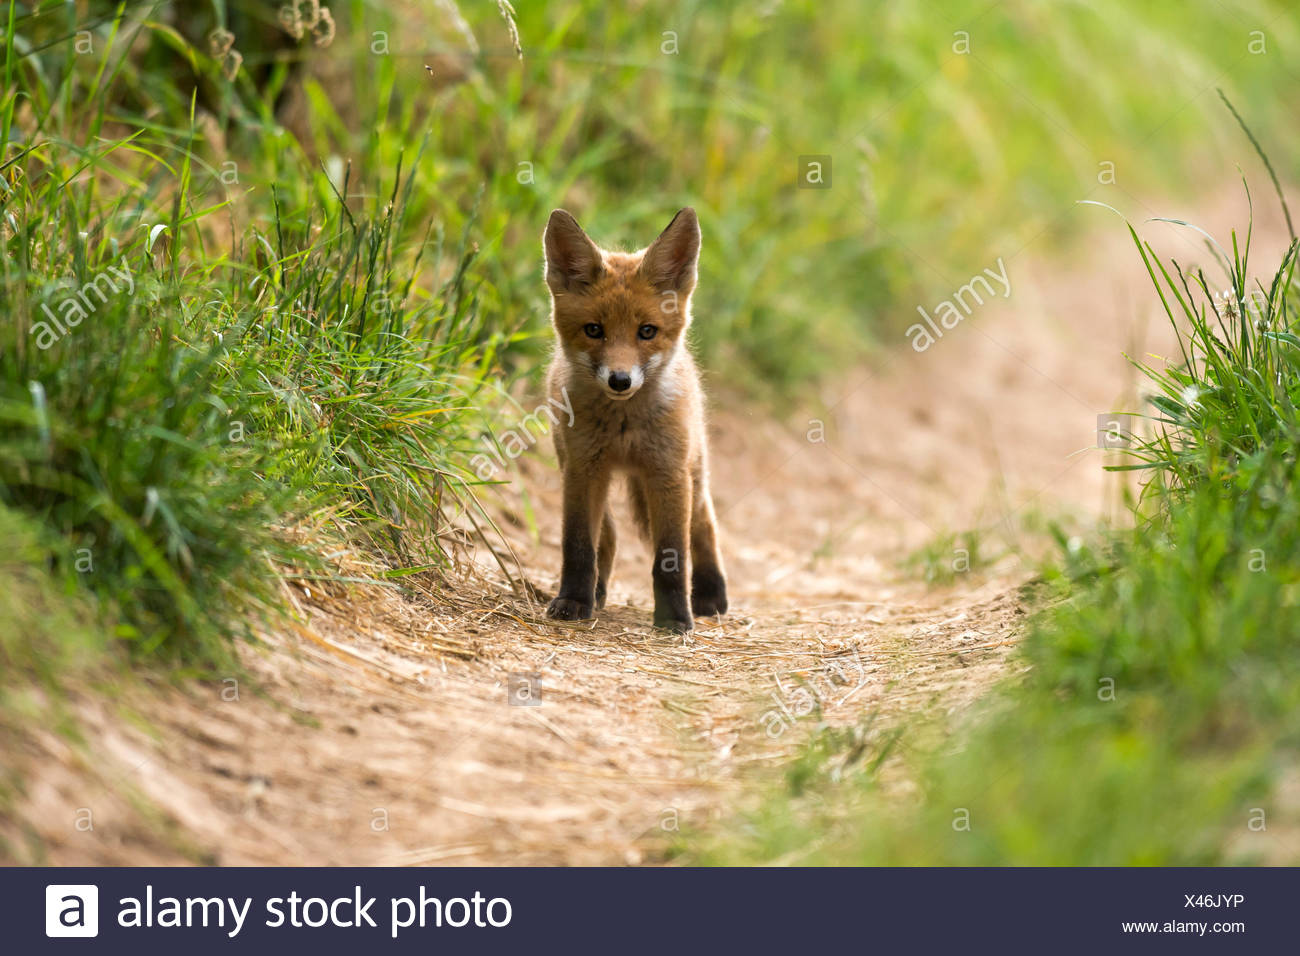 Young red fox (Vulpes vulpes) standing on path, Young Animal, Puppy, Baden-Württemberg, Germany Stock Photo